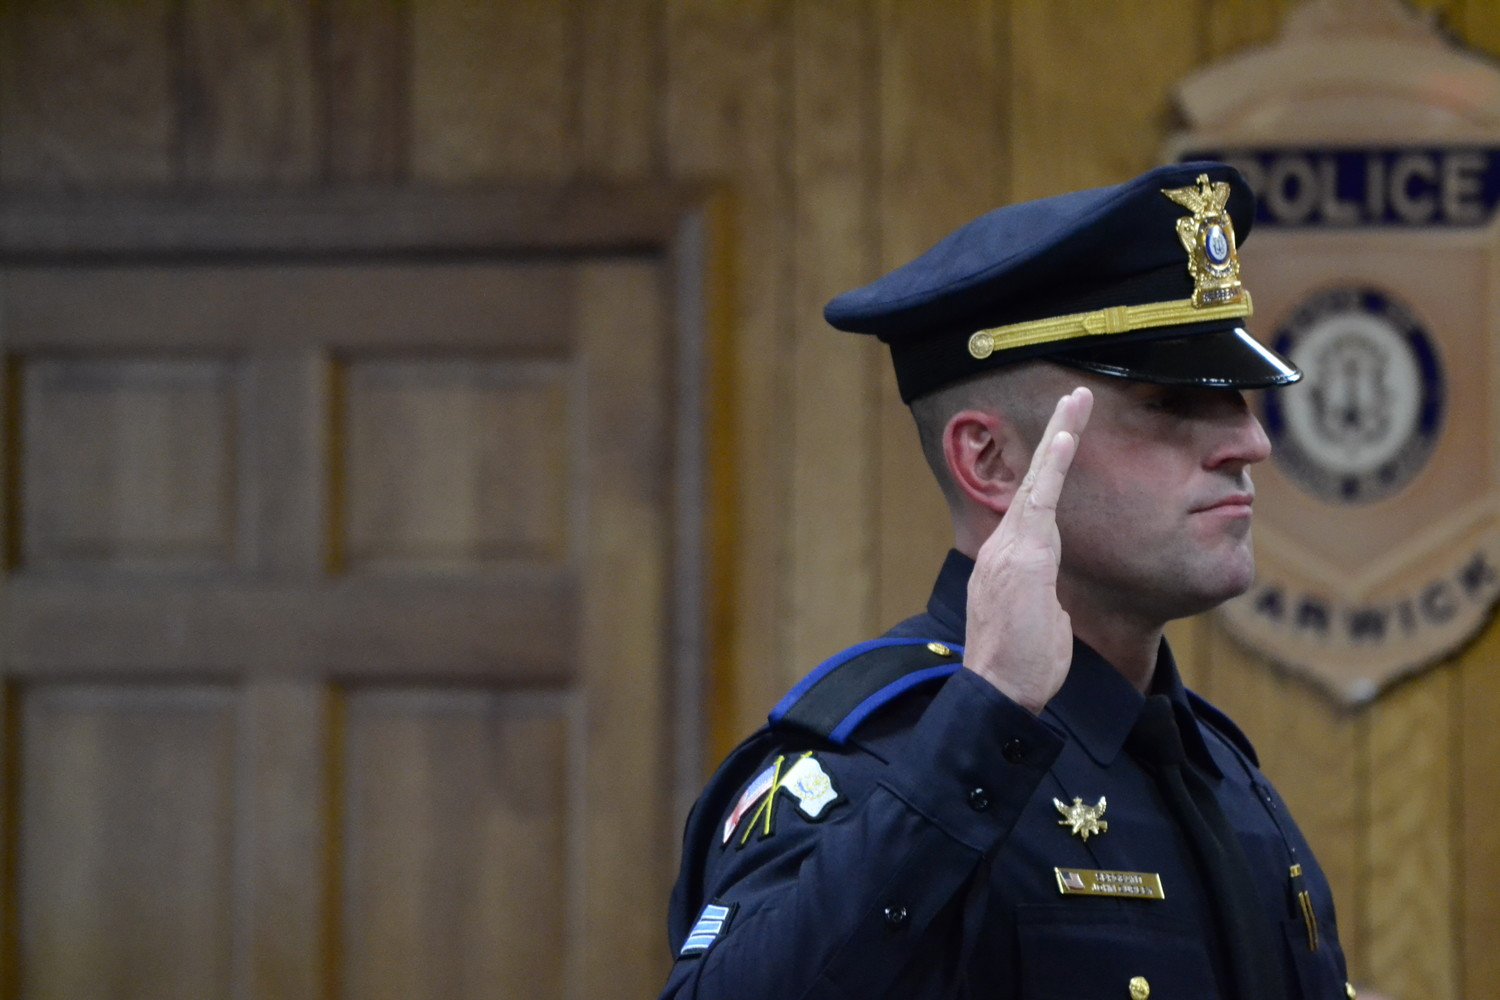 PROMOTED: John Curley while being sworn in as a new sergeant in the Warwick Police Department. He was pinned by his wife, Mallory.